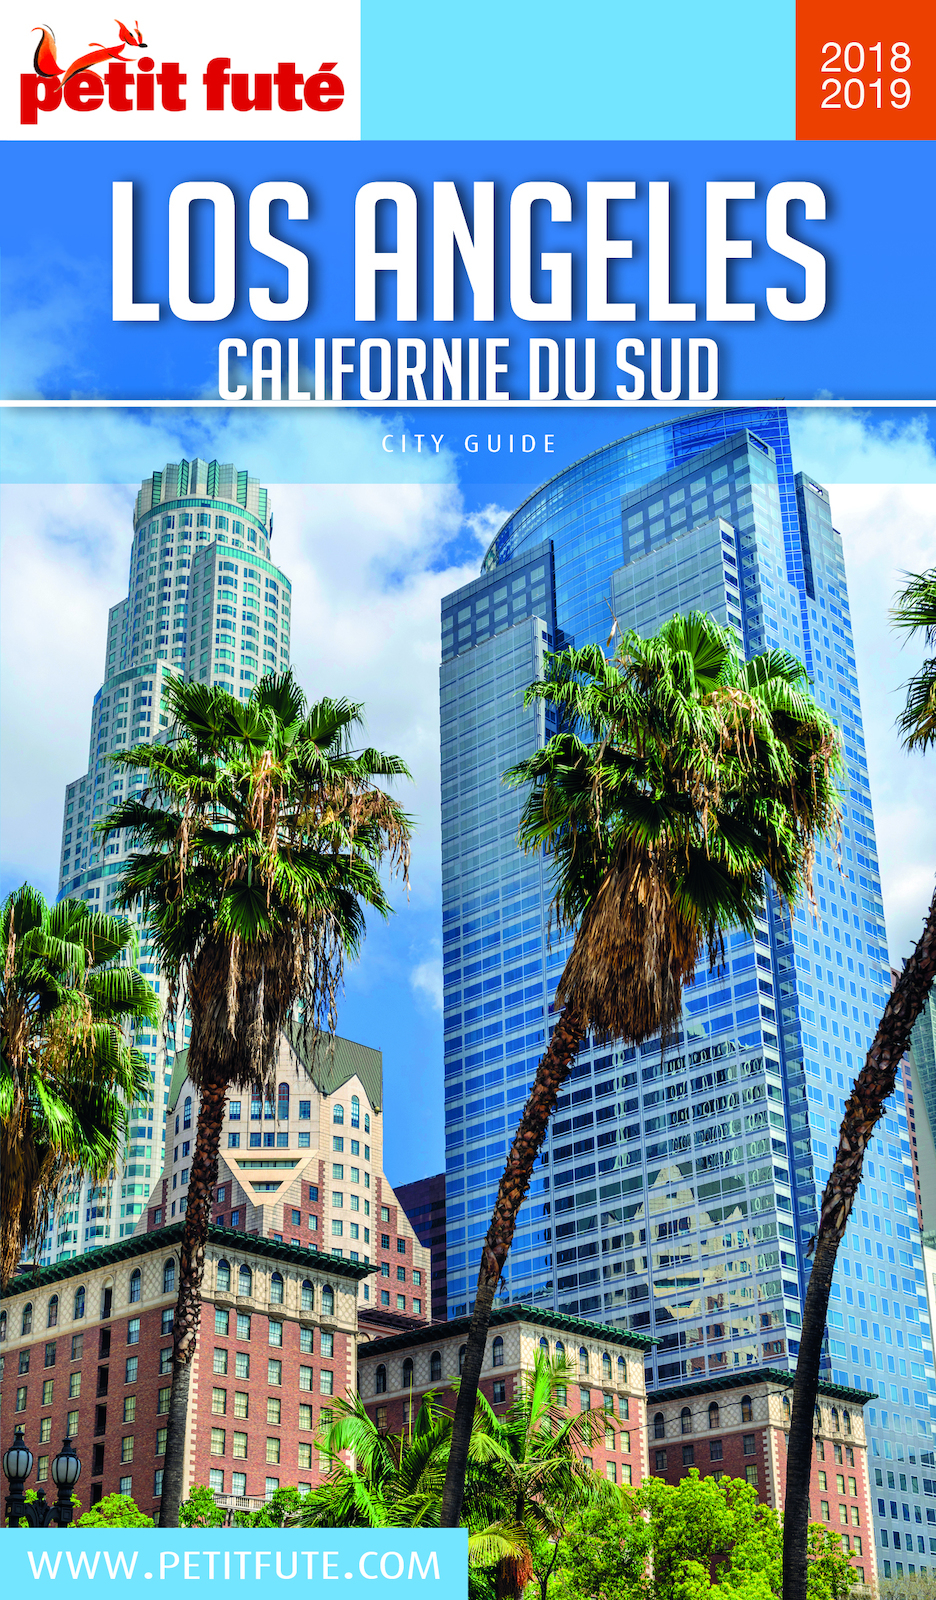 LOS ANGELES / CALIFORNIE DU SUD 2018/2019 Petit Futé